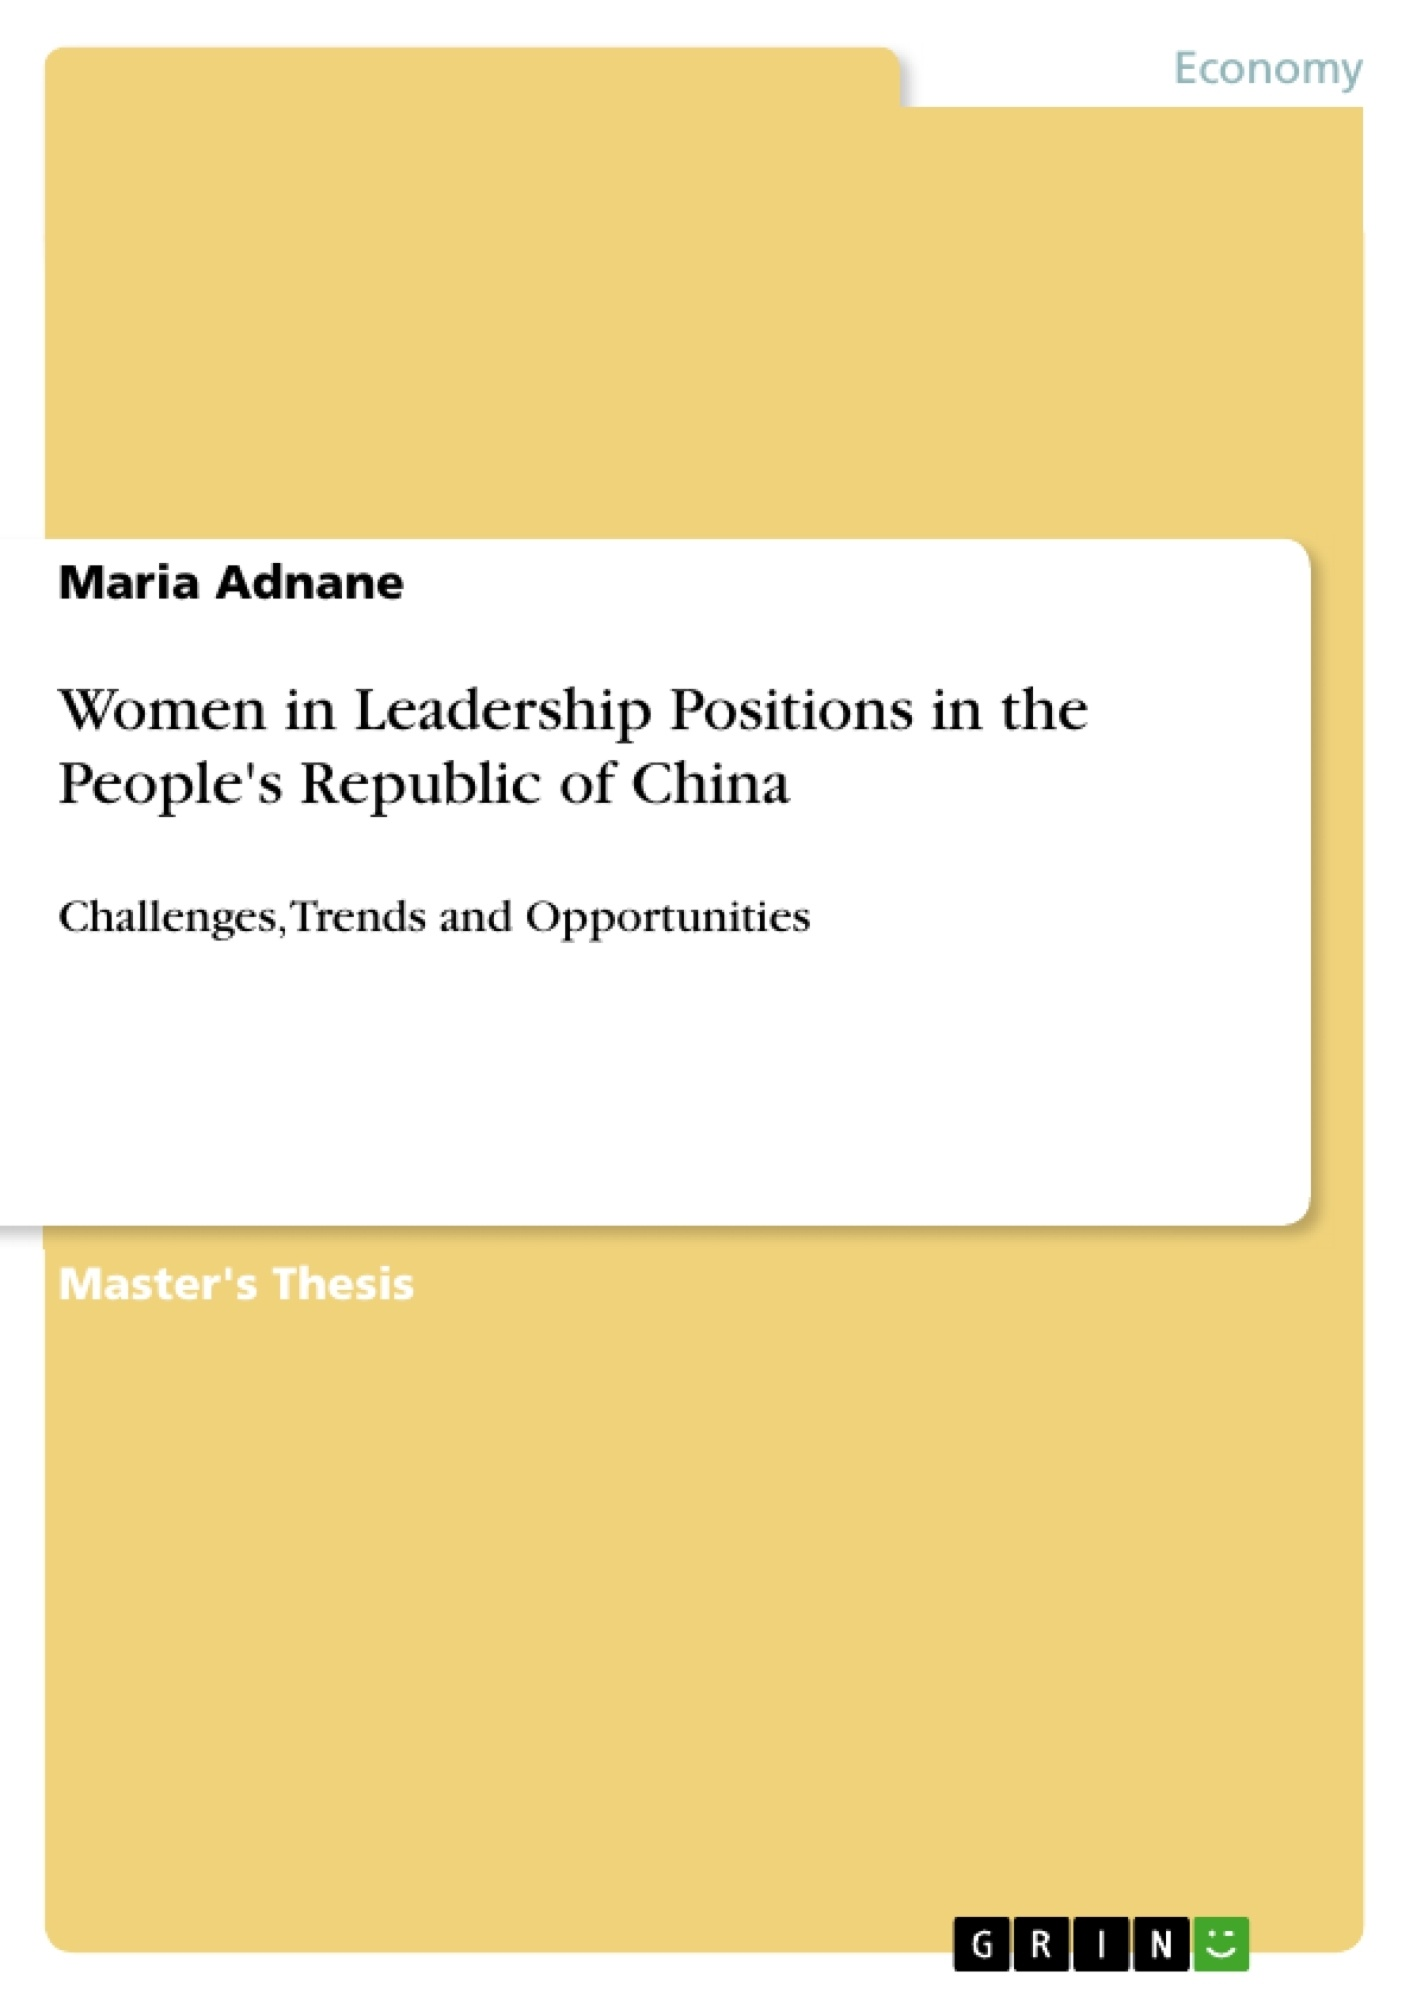 Title: Women in Leadership Positions in the People's Republic of China